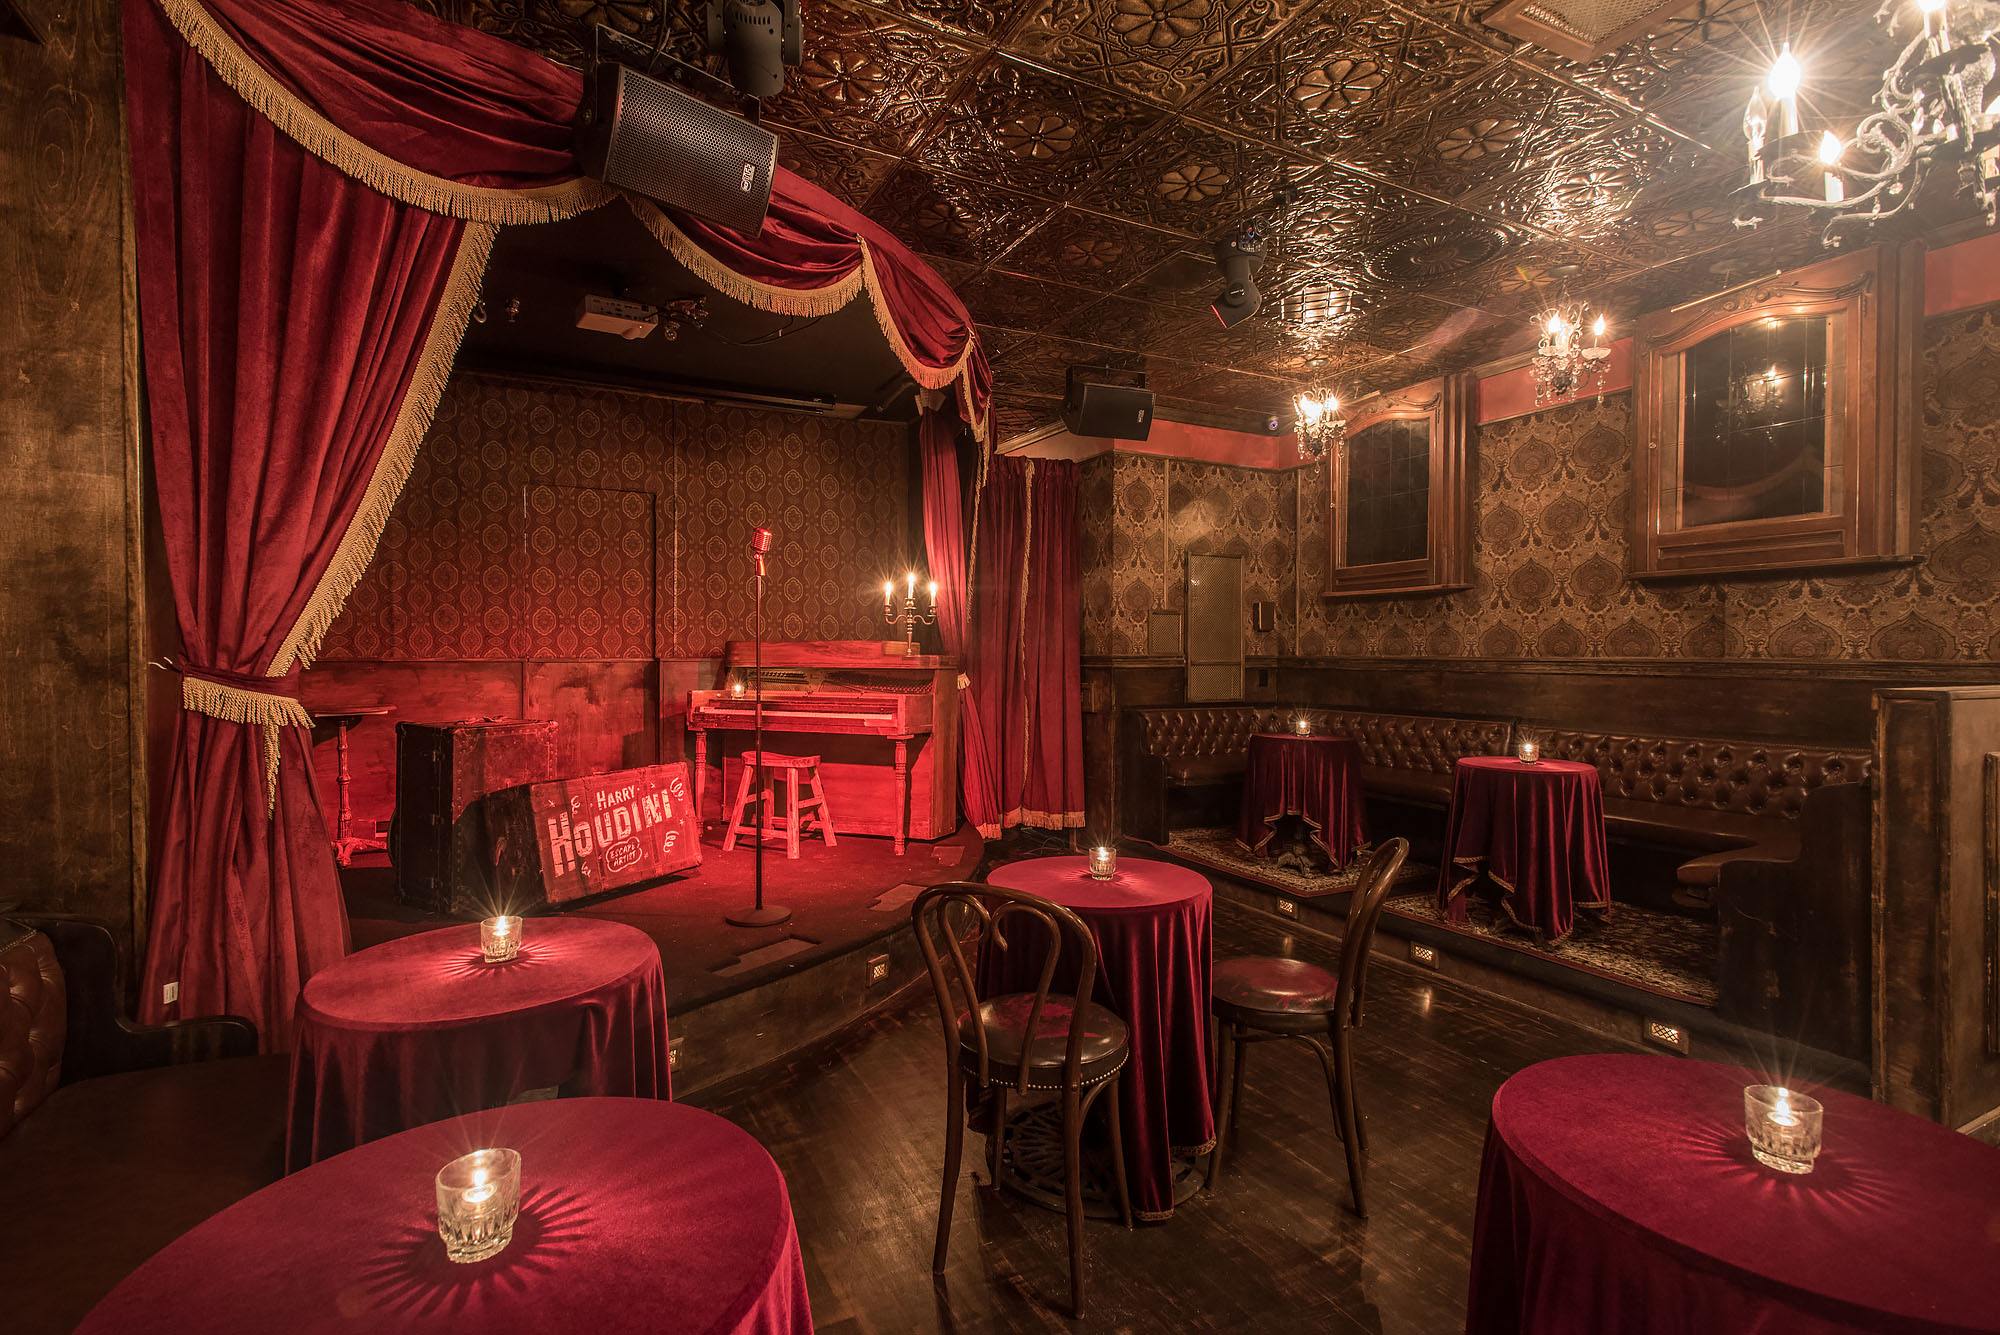 black rabbit rose revives the magic theater in hollywood - eater la